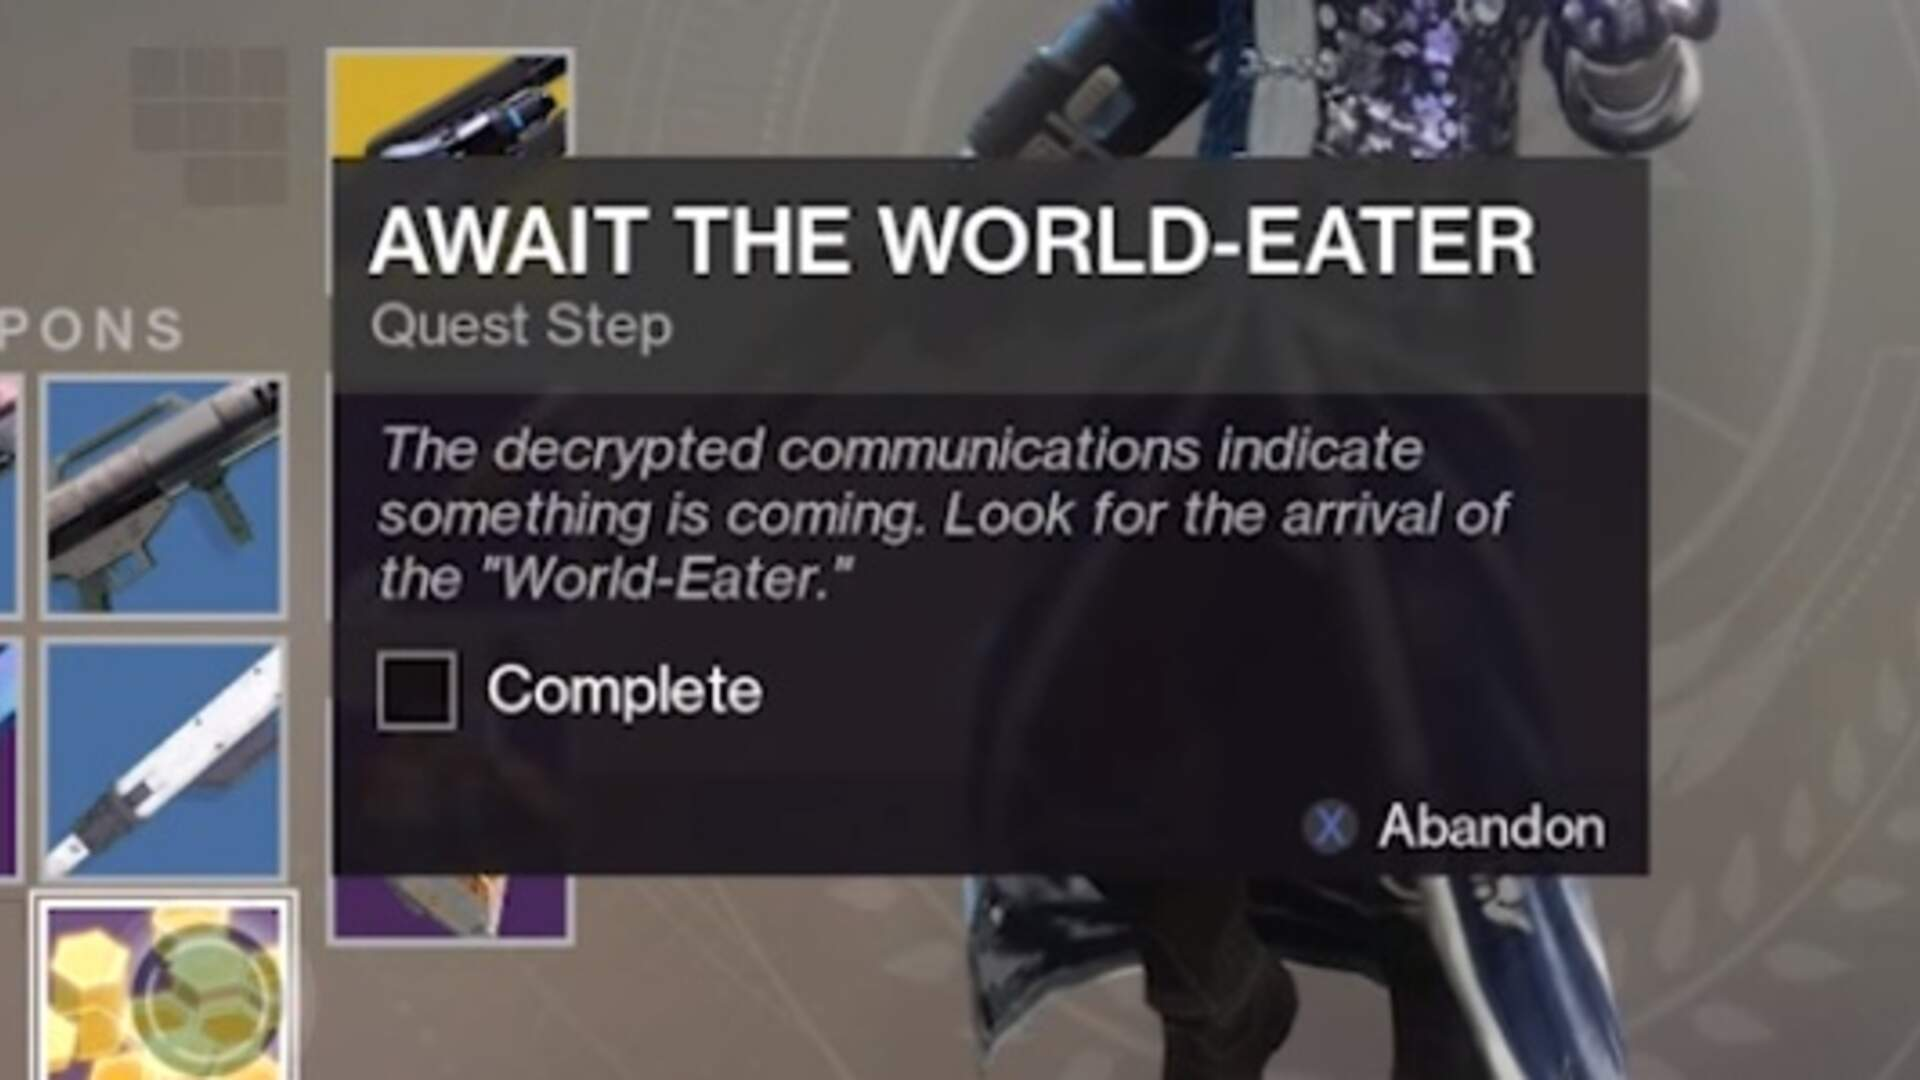 Destiny 2 World-Eater Quest Guide - How to Complete On the Comms, Await the World-Eater Mission Walkthrough